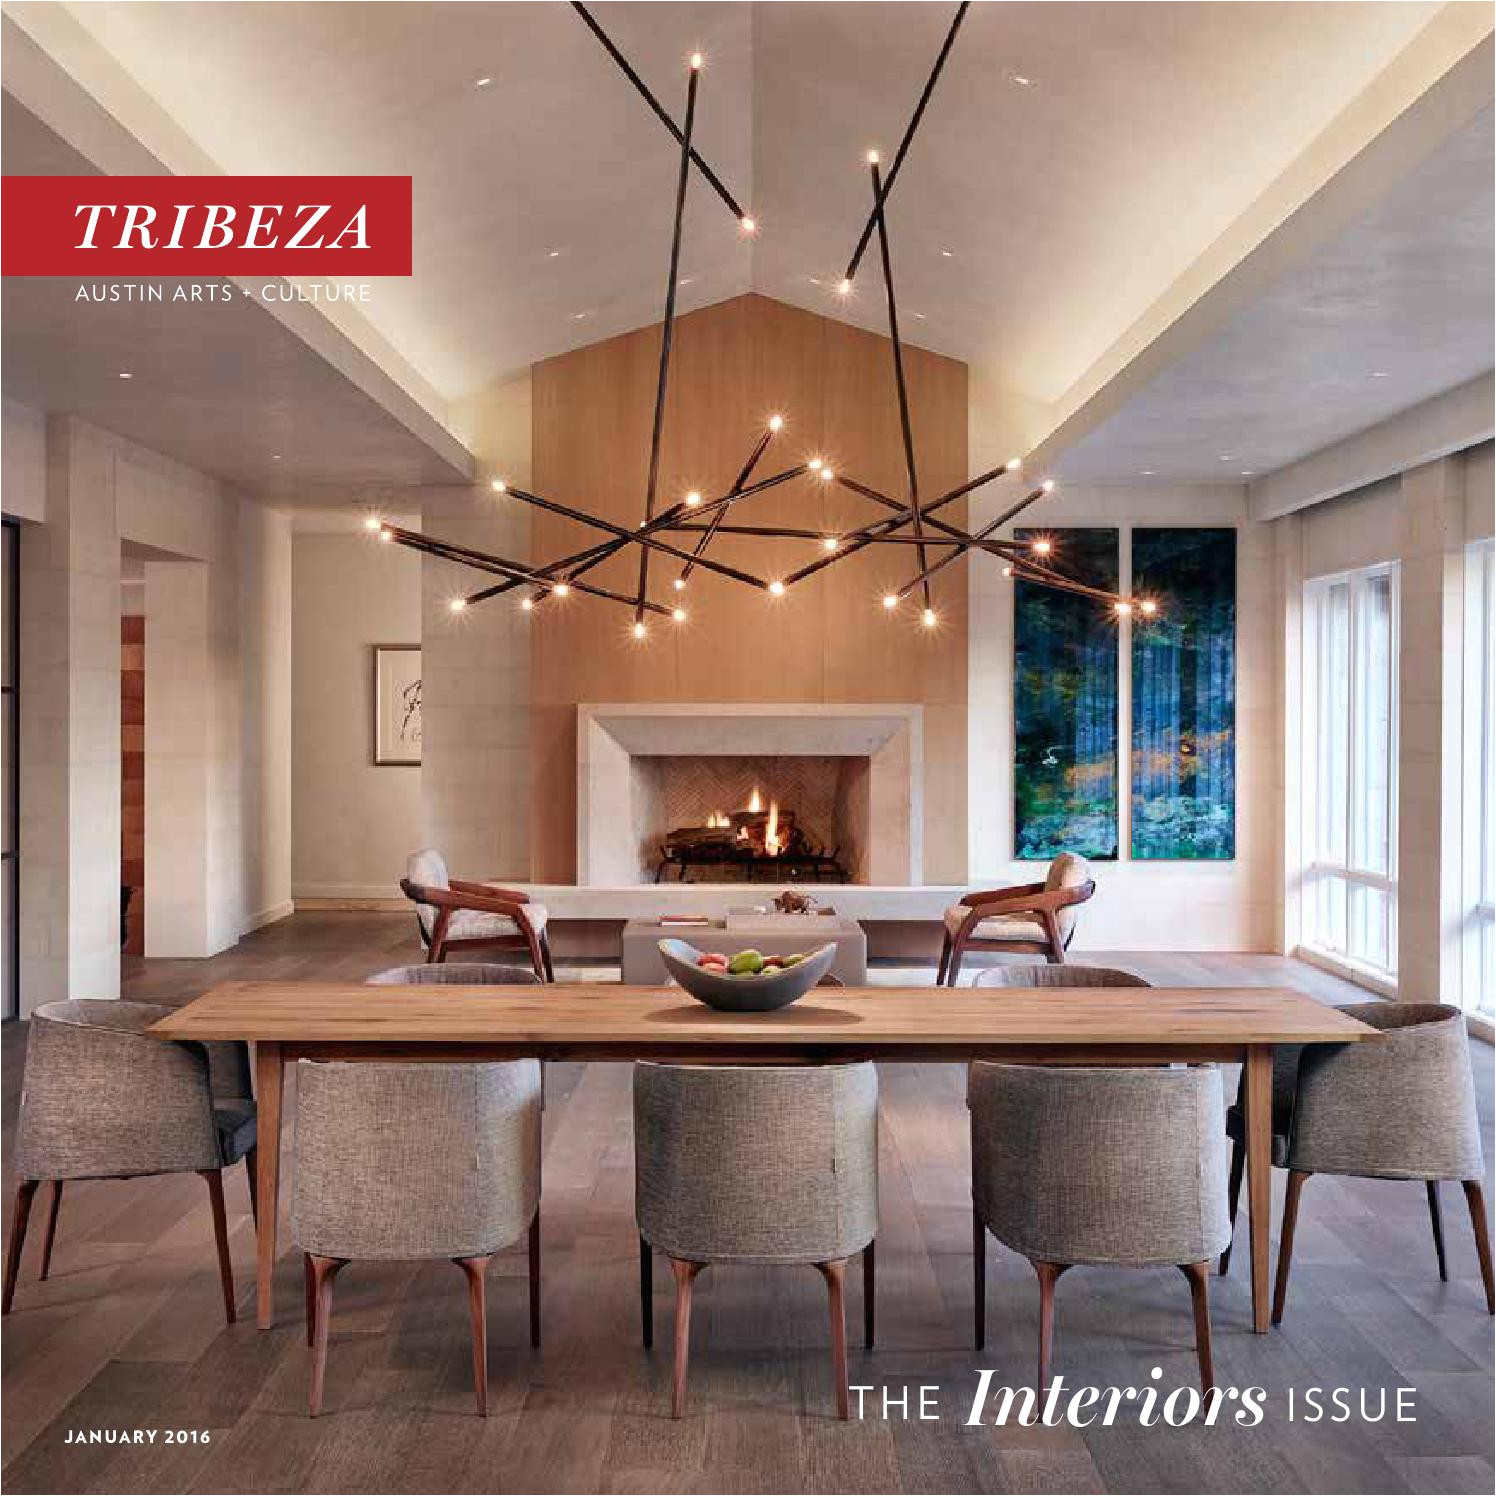 Armstrong Drop Ceiling Tile 1205 January 2016 Interiors issue by Tribeza Austin Curated issuu